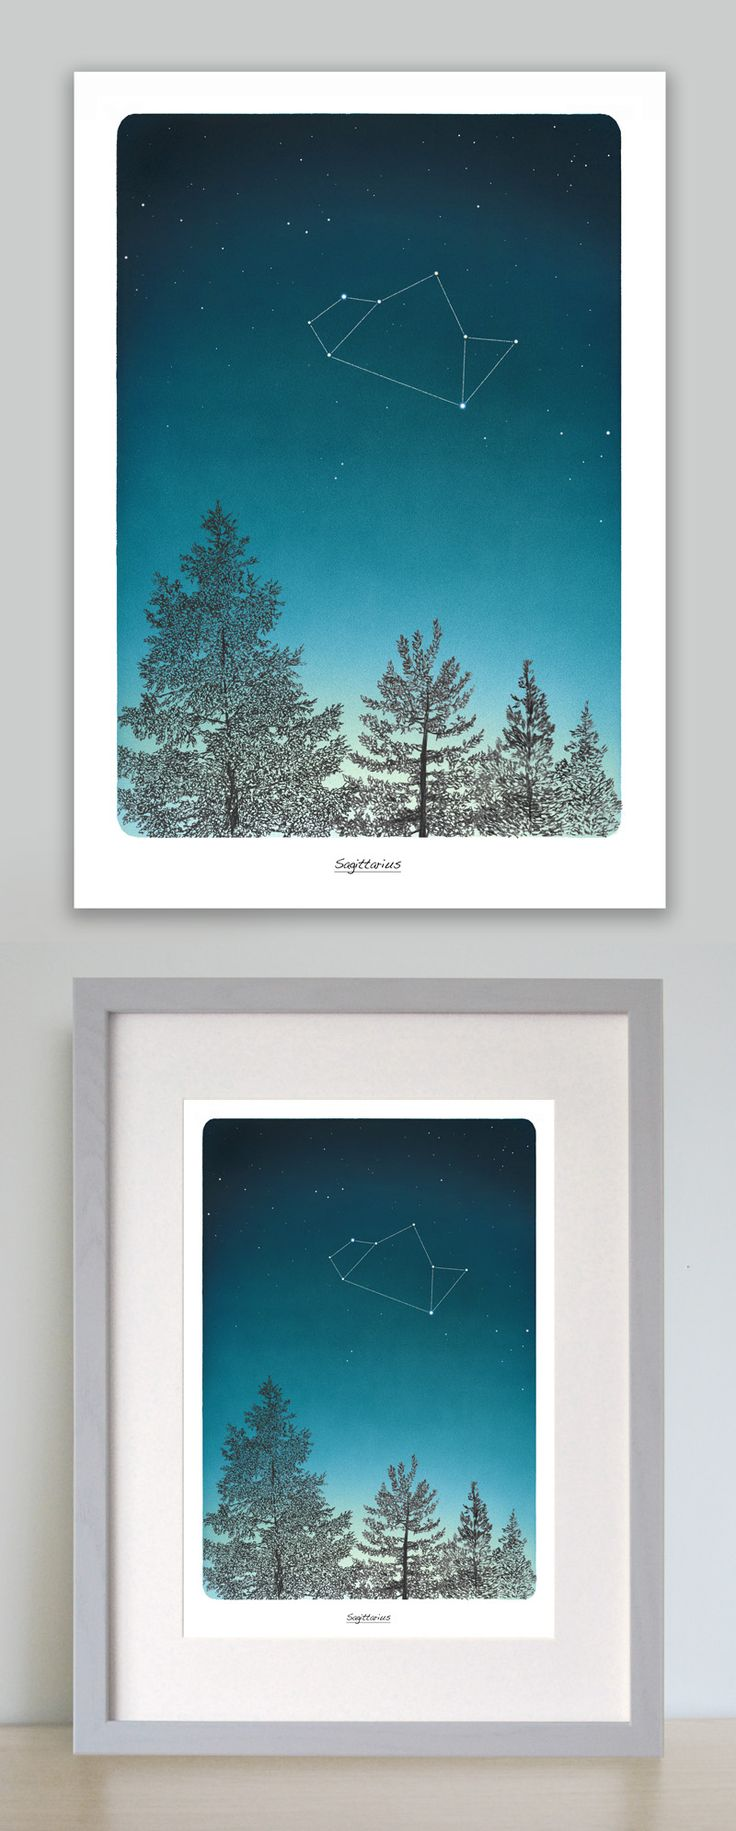 This beautiful zodiac art print depicting Sagittarius star constellation in the night sky is the perfect birthday gift. Printed onto a high quality heavy weight soft textured matt fine art paper. Along with your celestial art print you will receive an additional A4 print explaining all you need to know about the star sign and the constellation. The Sagittarius Star sign is between November 22 – December 21   www.leemorris.org.uk